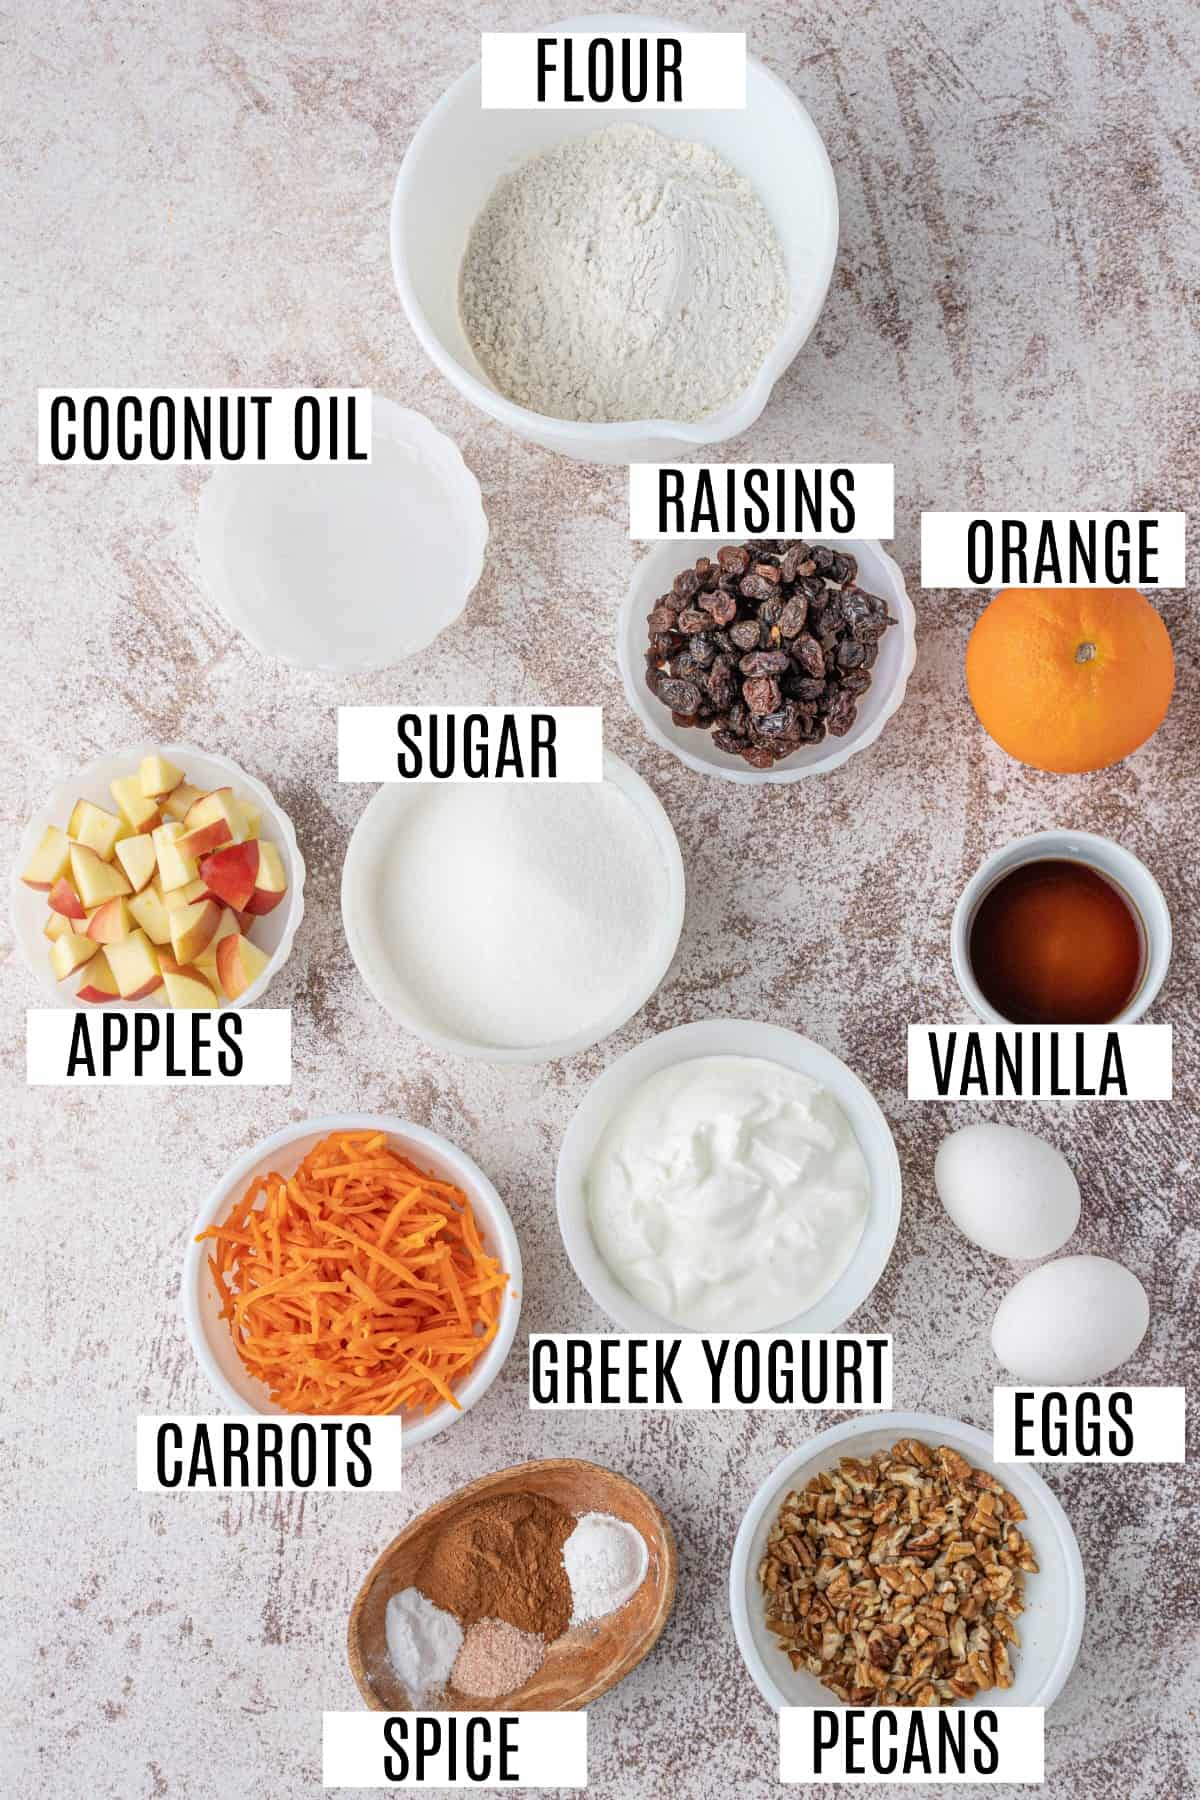 Ingredients needed for morning glory muffins including carrots, pecans, raisins, and apples.